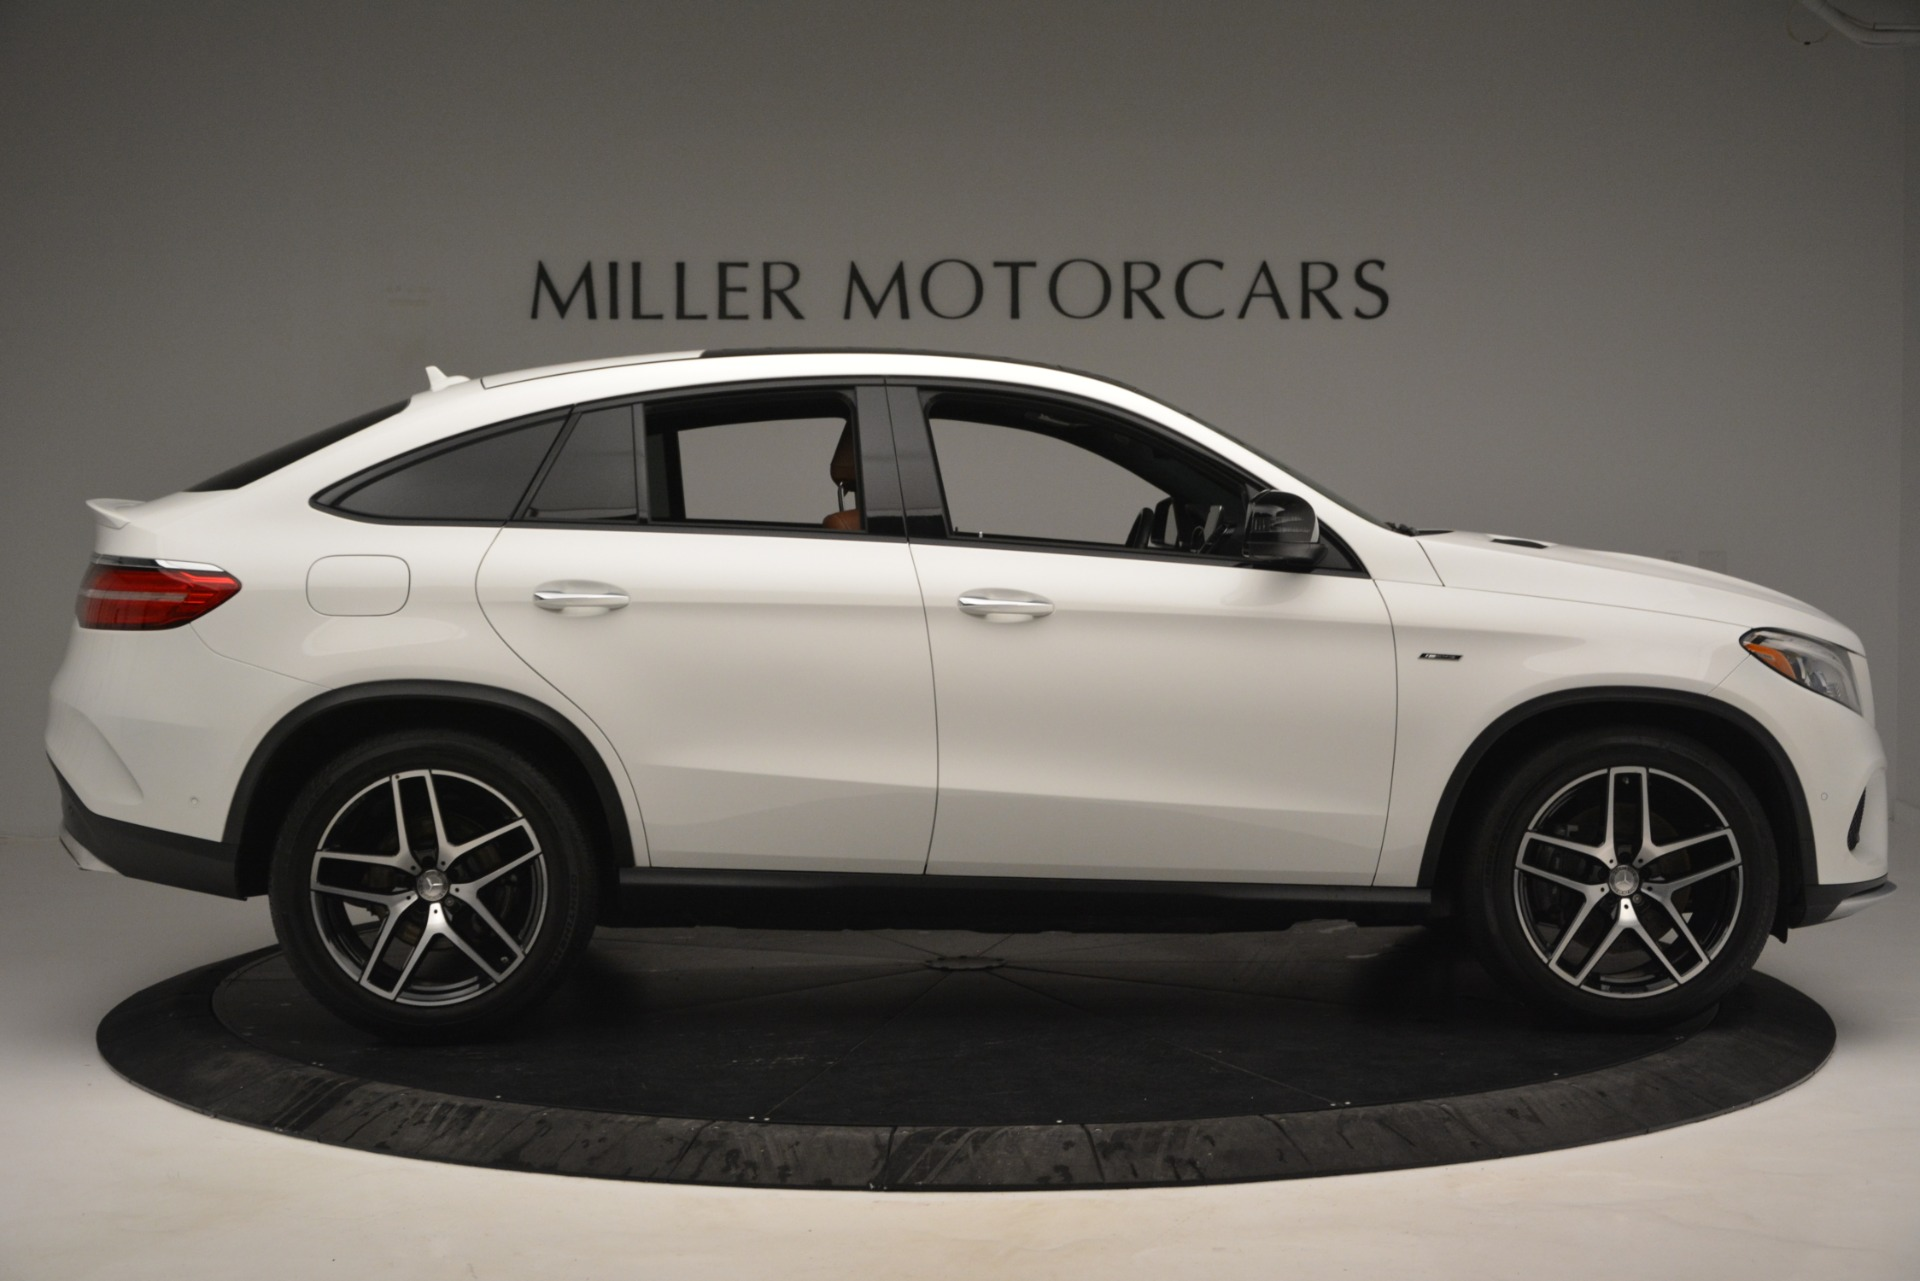 Used 2016 Mercedes-Benz GLE 450 AMG Coupe 4MATIC For Sale In Westport, CT 2787_p9